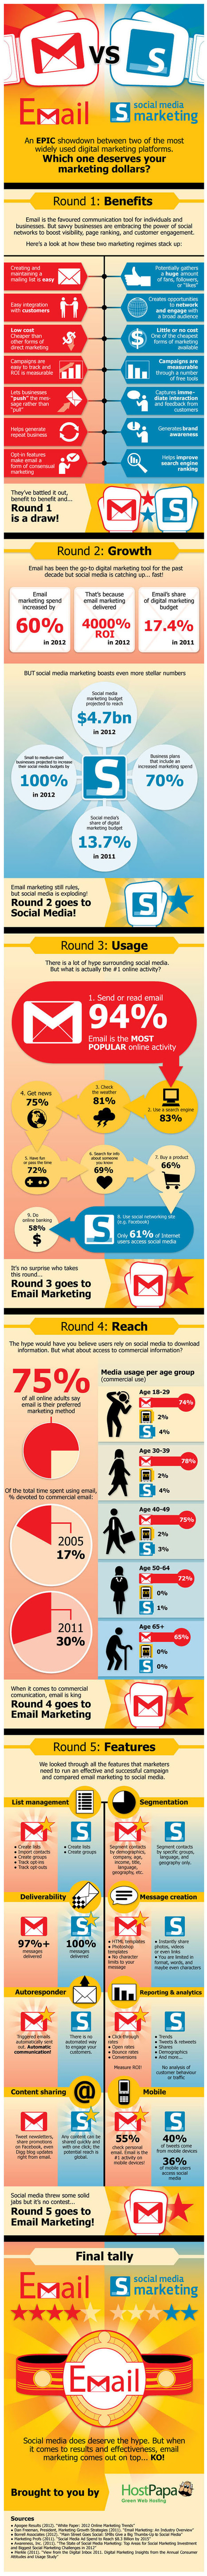 Email Marketing vs Social Media Marketing | Social-Business-Marketing | Scoop.it